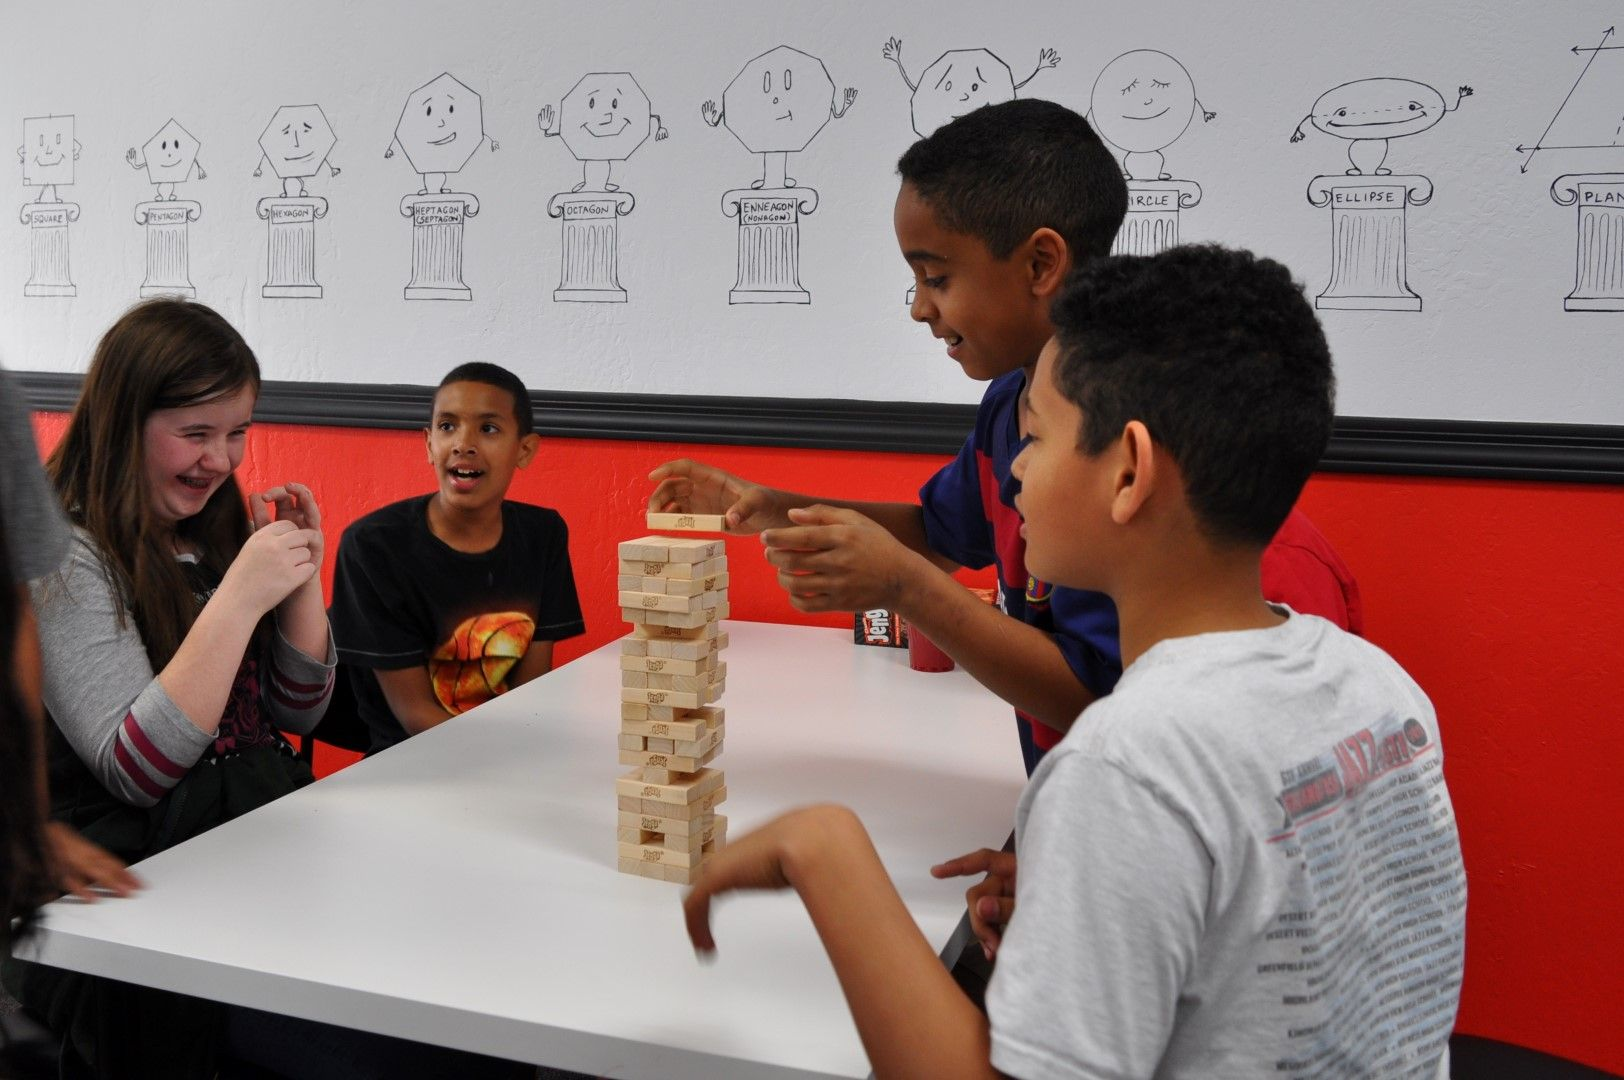 Sophia, Jaylen, Obai and David playing an exciting game of Jenga.